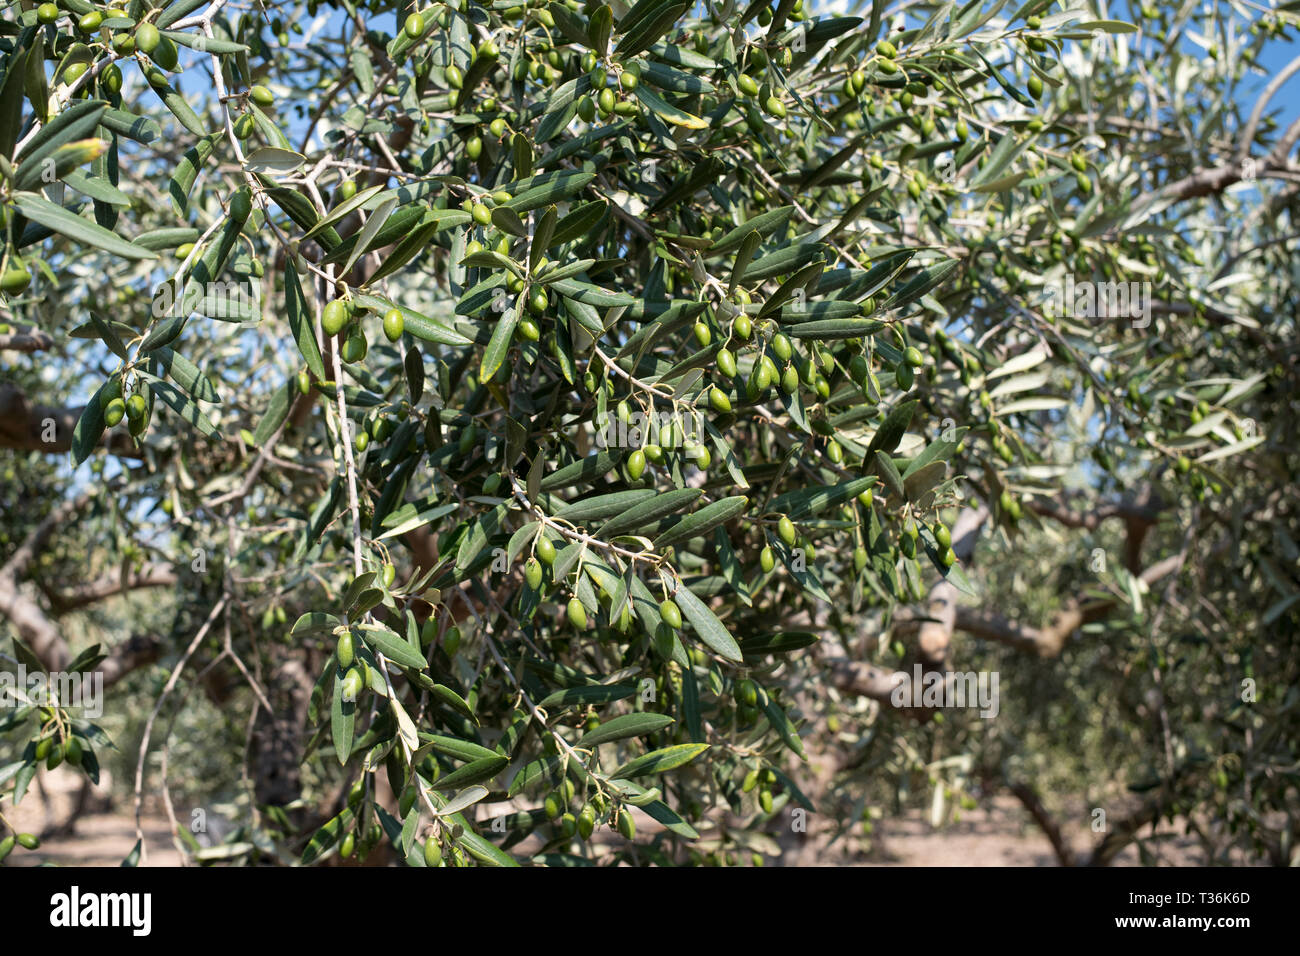 Coratina olives growing for extra virgin olive oil production at Azienda Agricola Mandranova at Palma di Montechiaro in Sicily Stock Photo